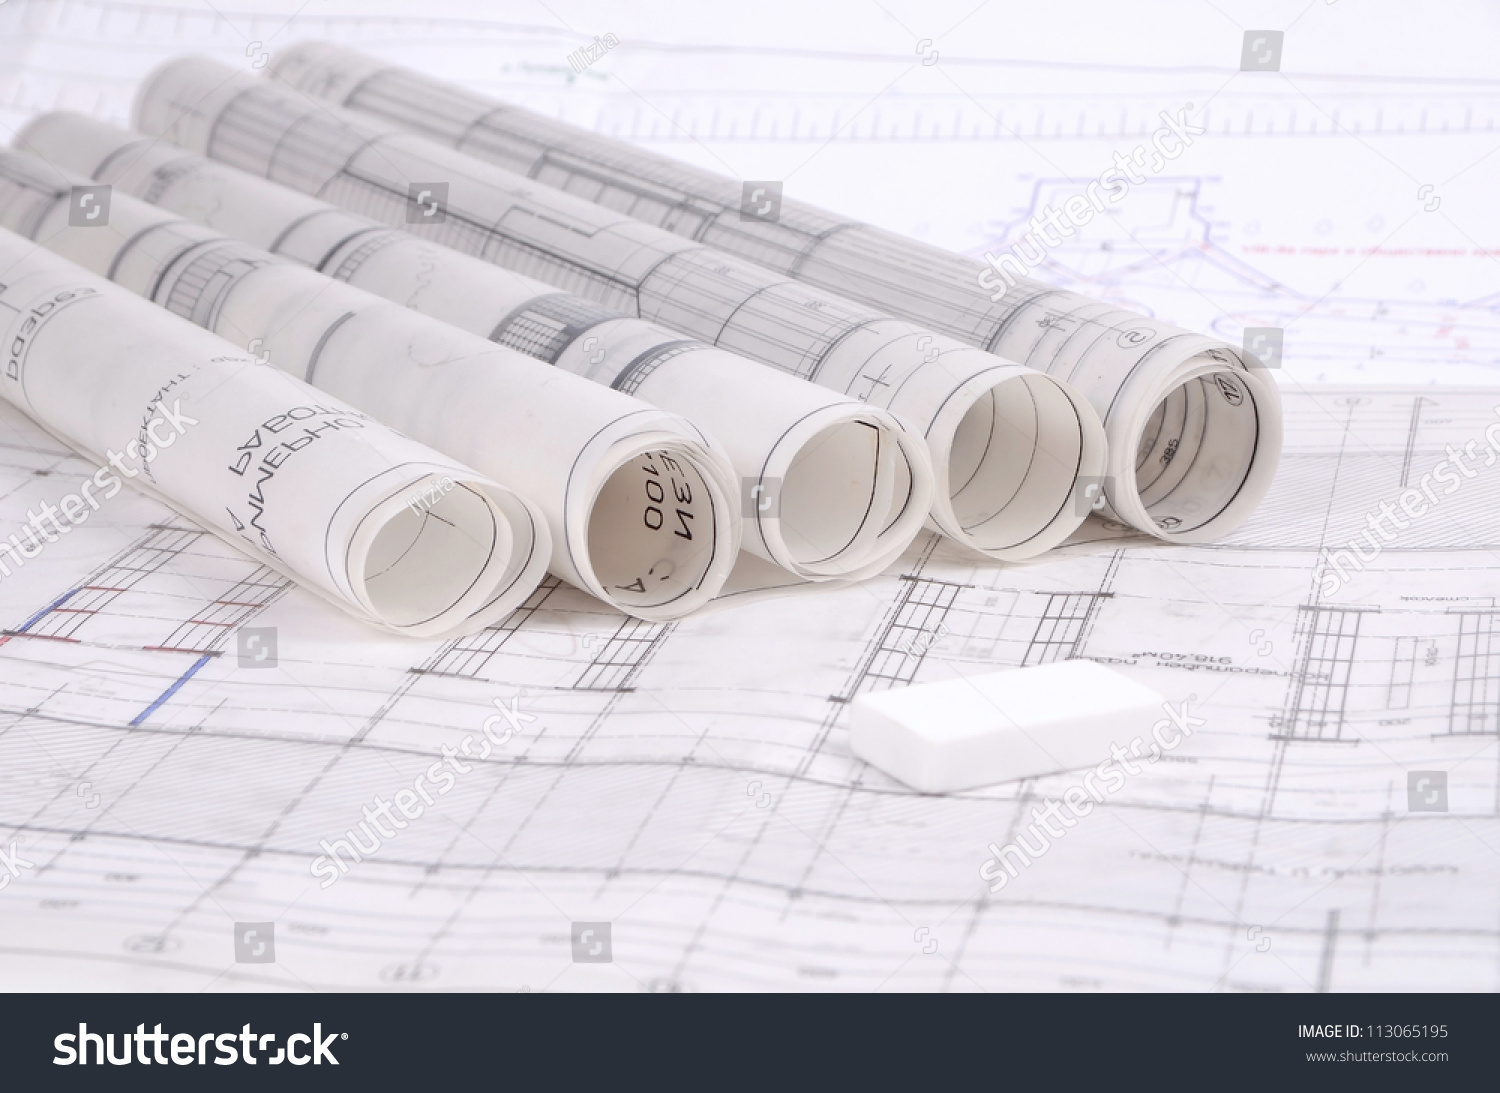 Architectural plans old paper tracing paper stock photo 113065195 architectural plans of the old paper tracing paper malvernweather